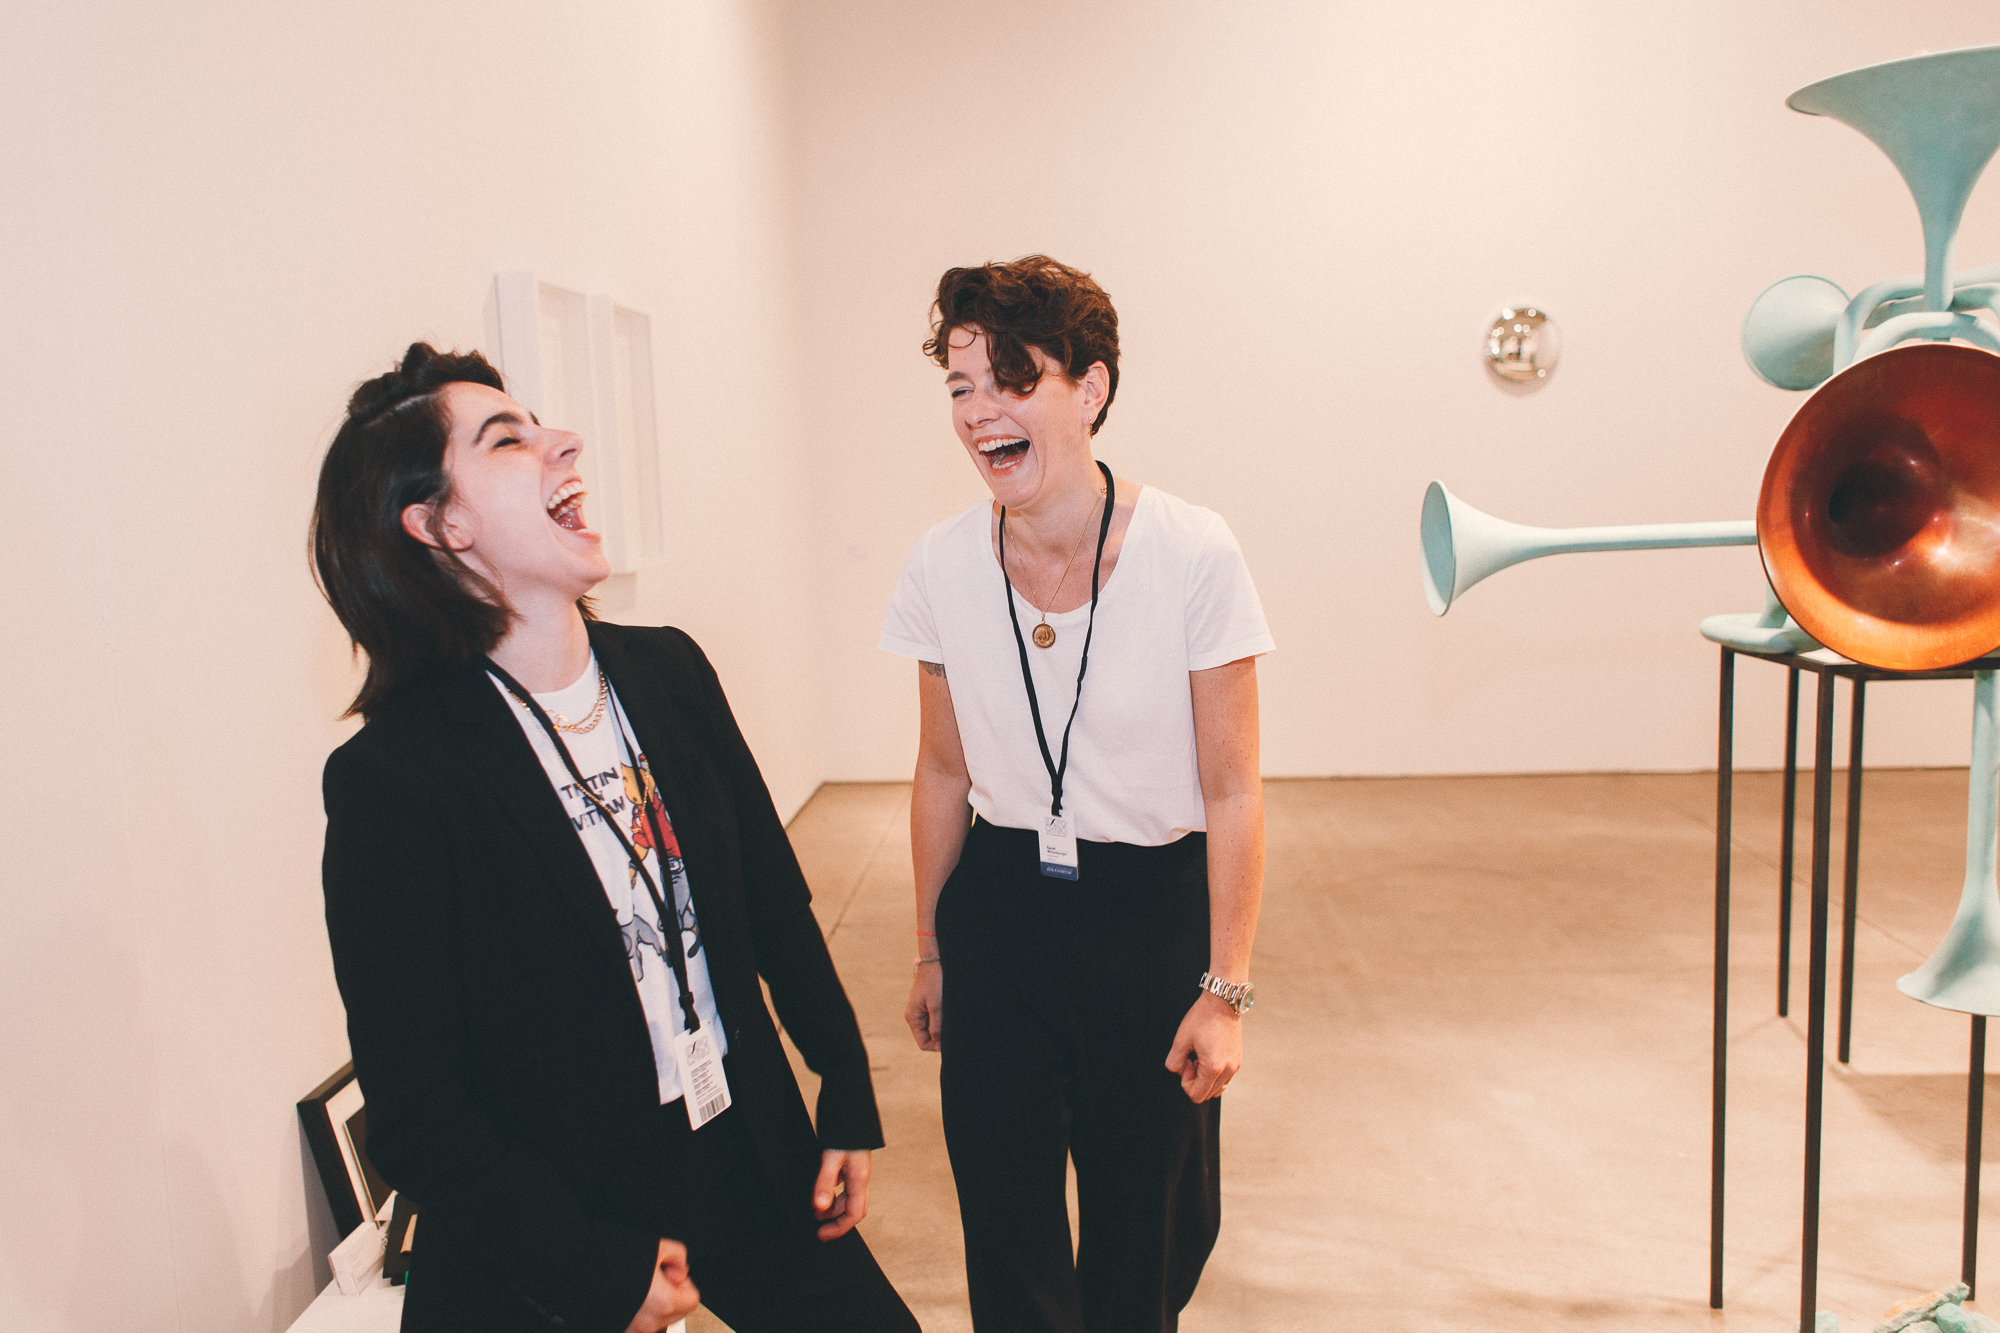 Laura Attanasio (left) and Sarah Miltenberger of König Galerie look effortlessly chic in black and white.